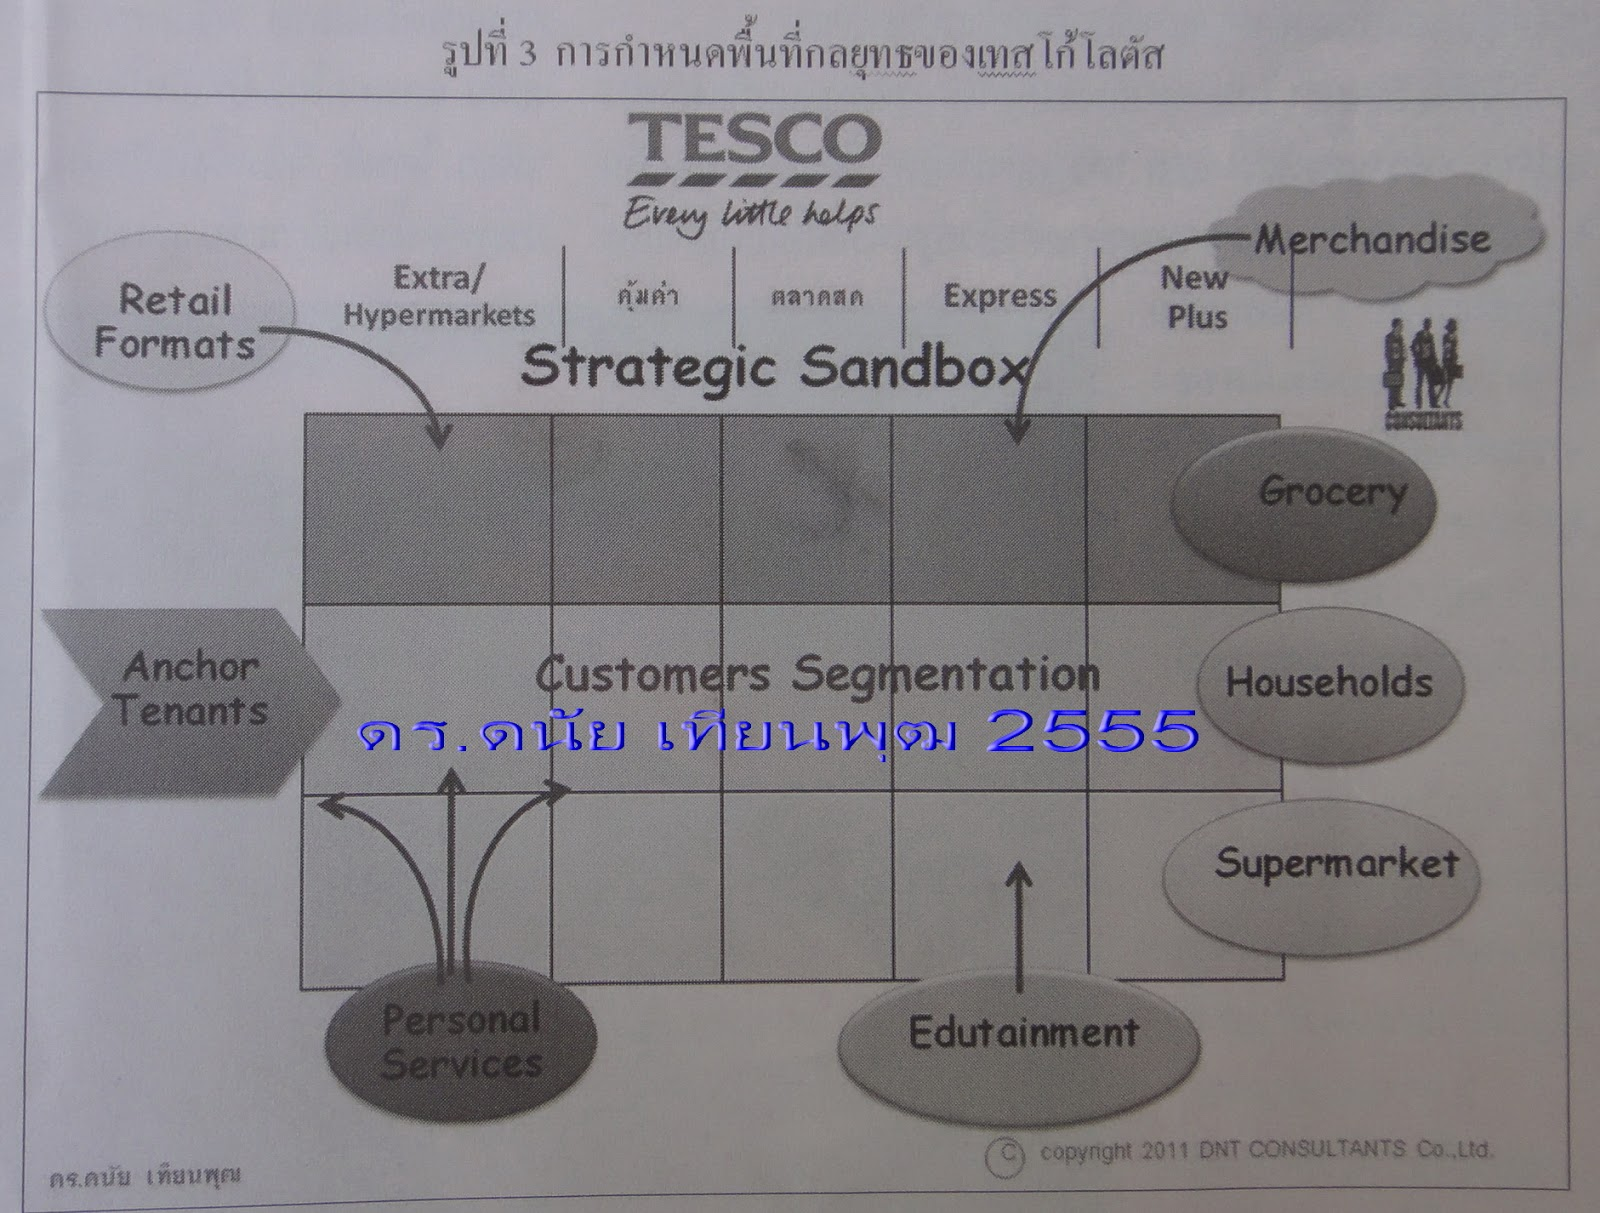 swot analysis tesco lotus thailand Walmart in thailand  swot analysis market analysis competitor analysis objectives market entry strategy  tesco lotus strengths weaknesses strengths.